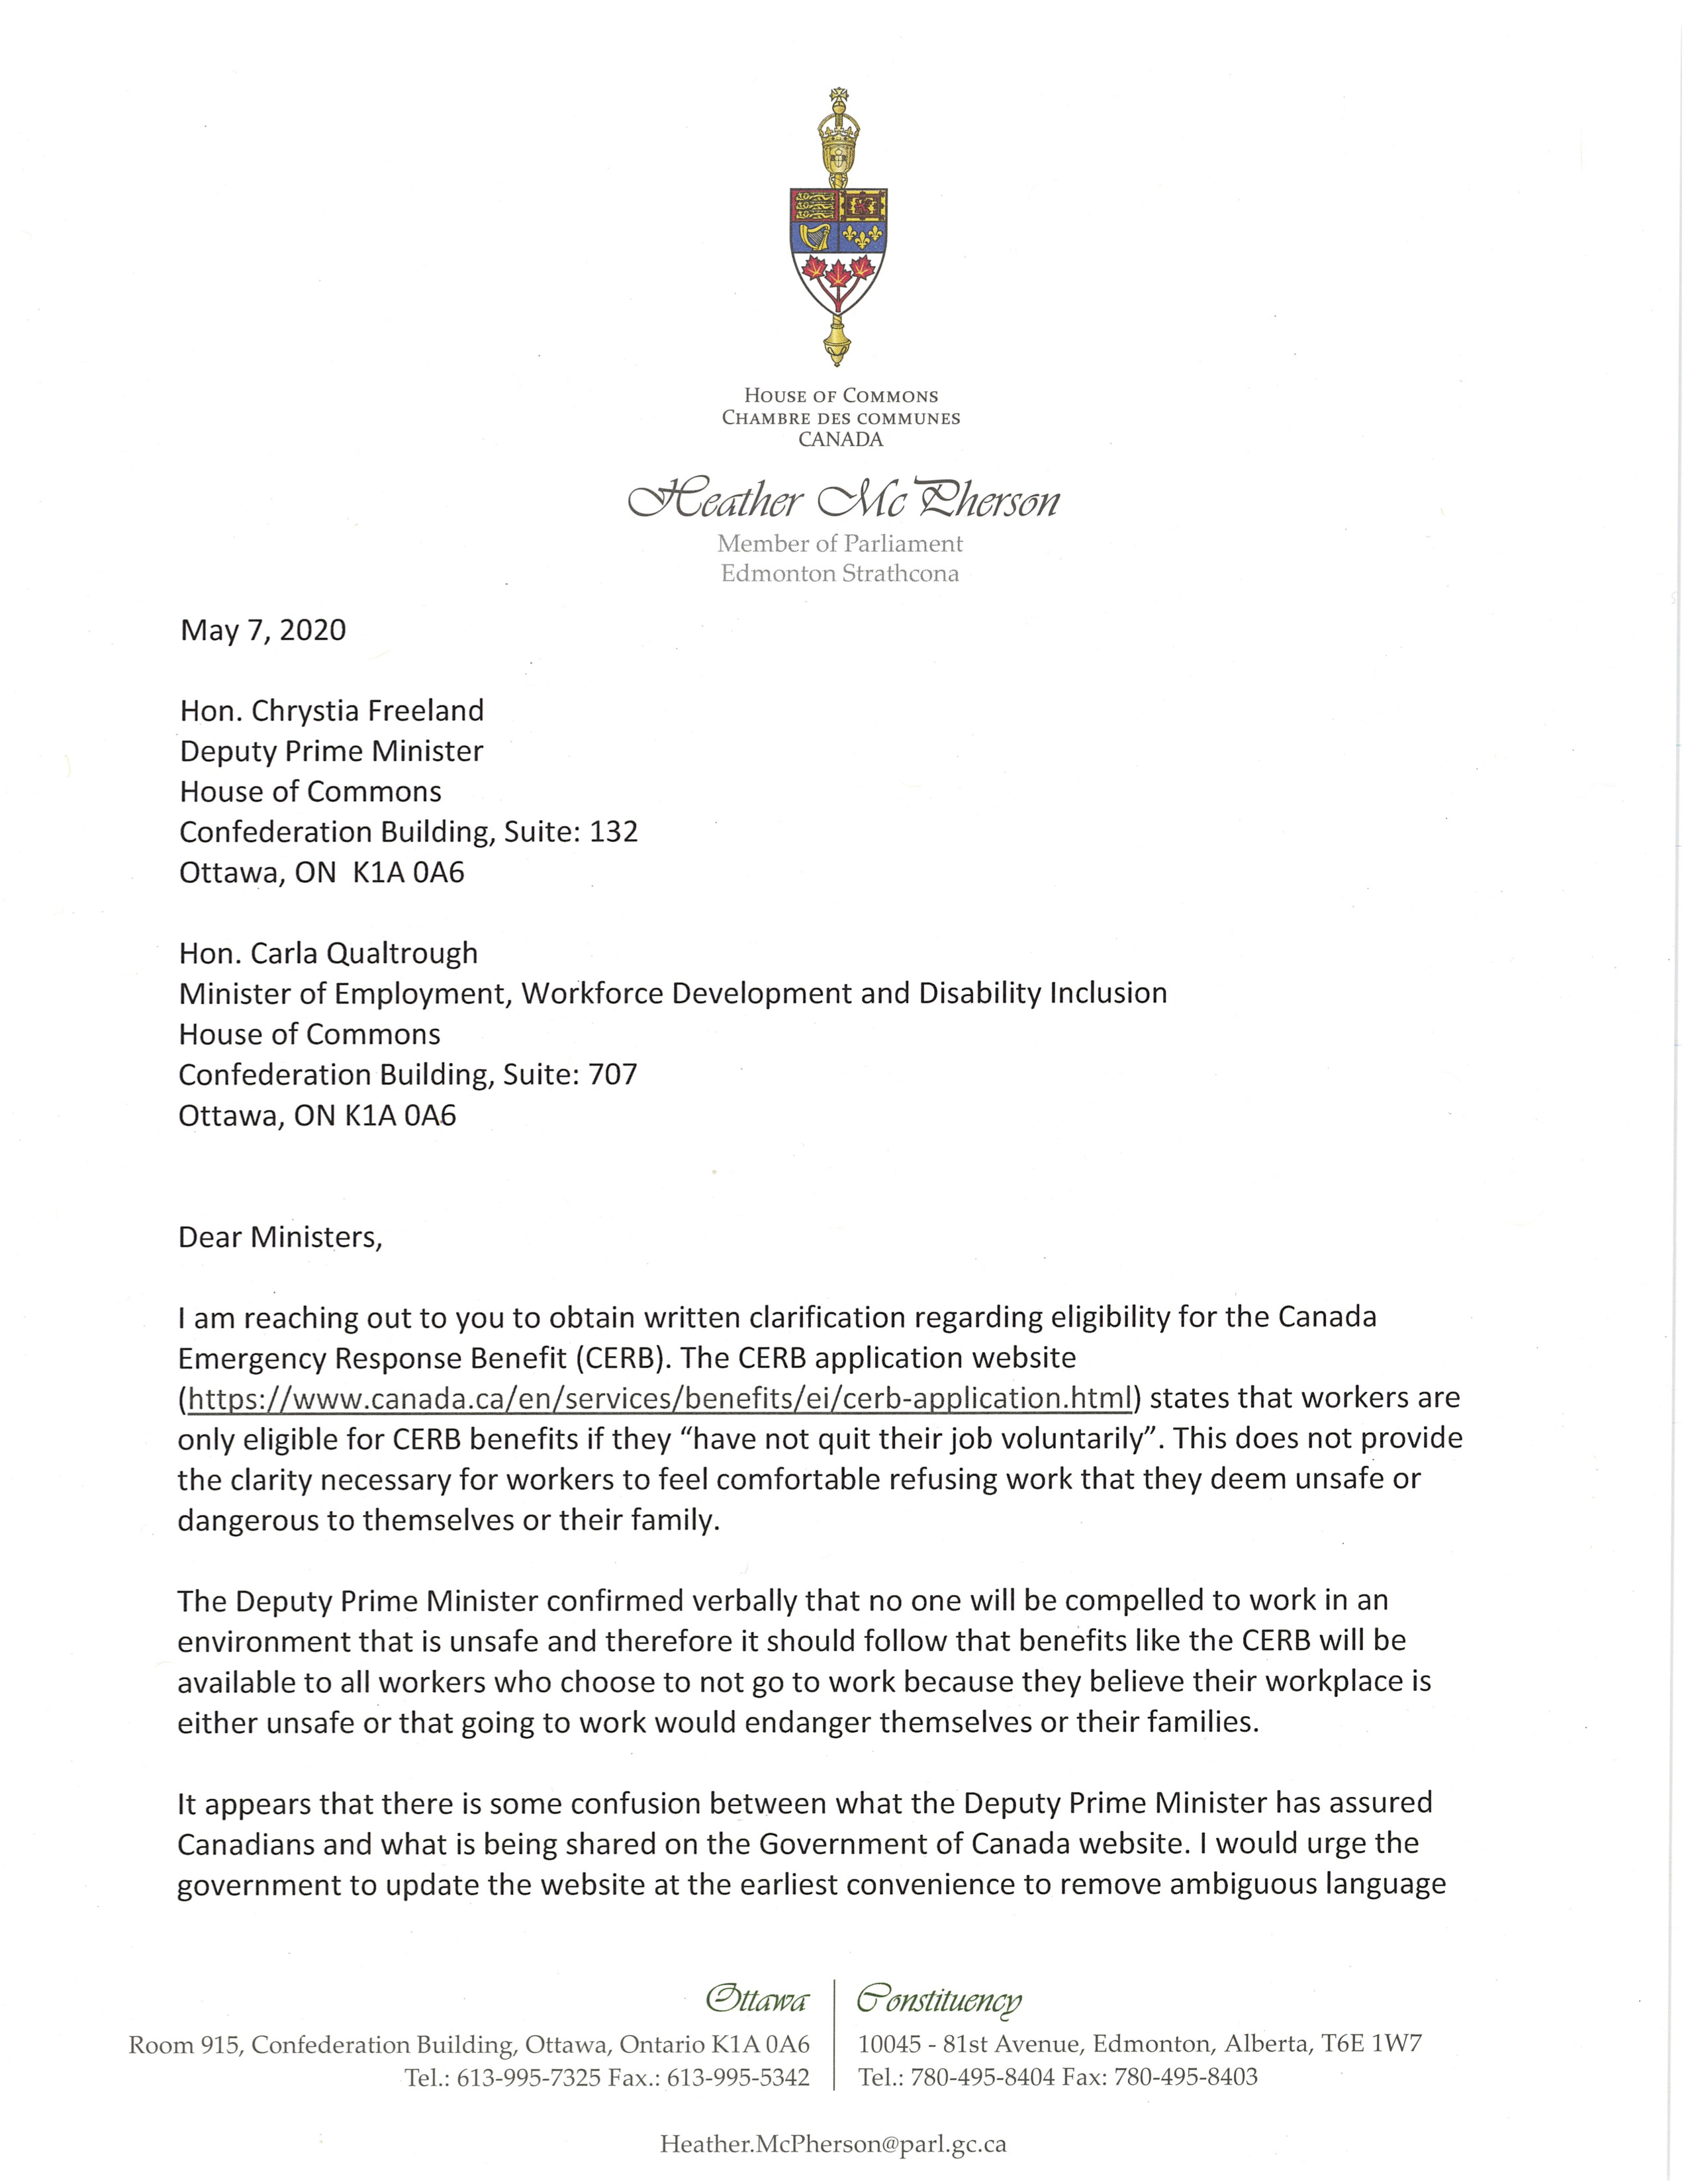 Letter to Ministers Freeland and Qualtrough Page 1